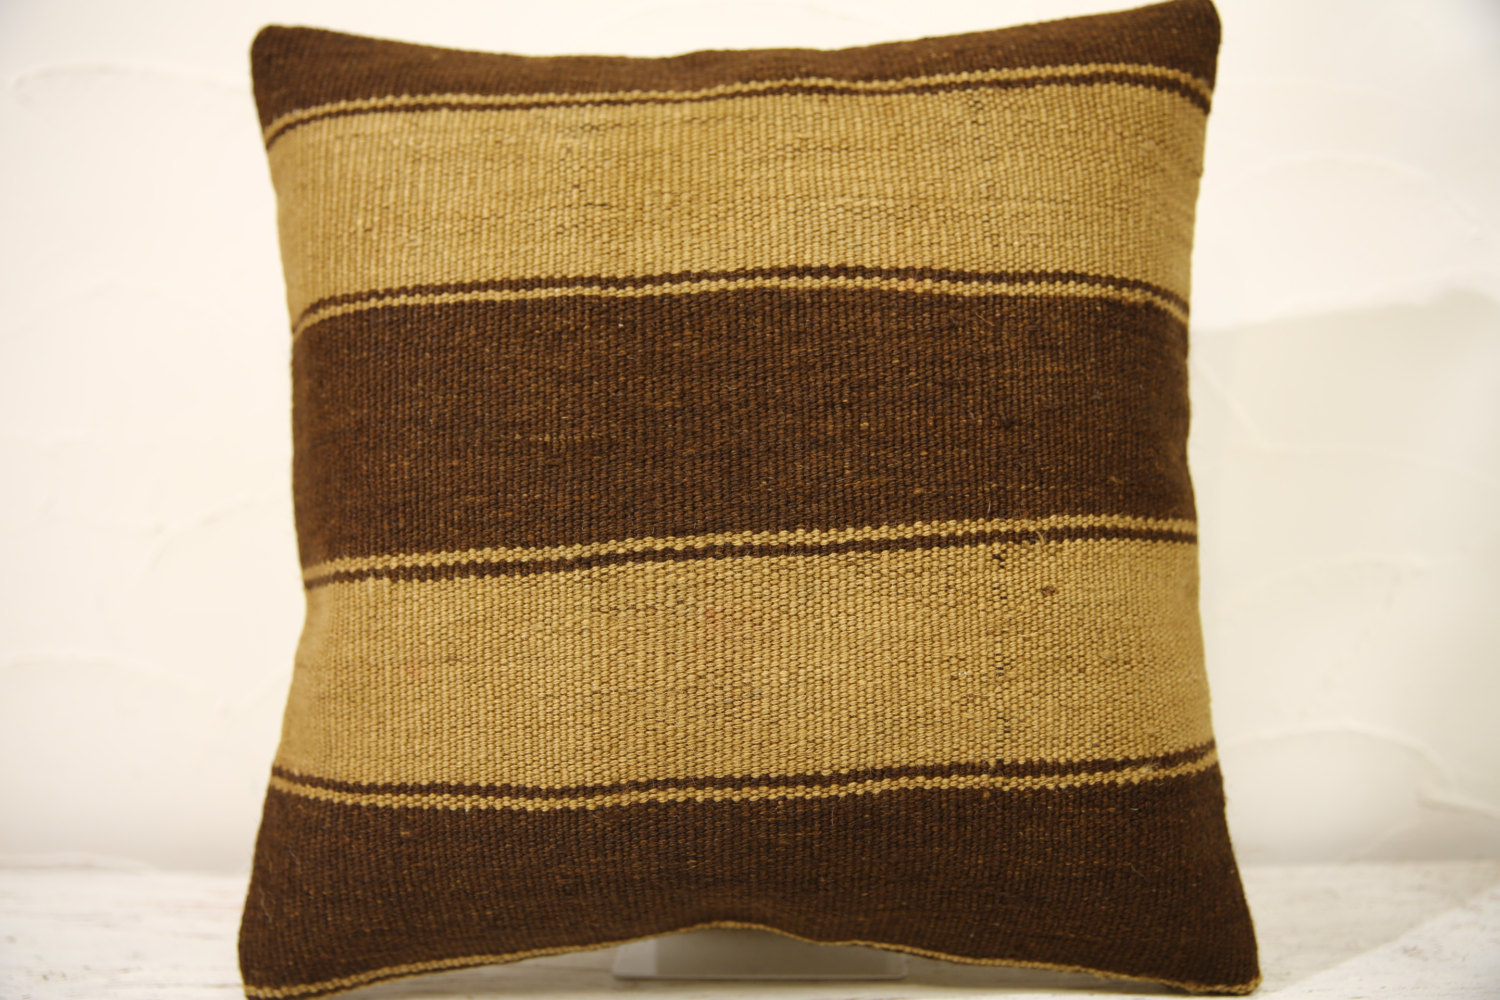 Kilim Pillows | 16x16 | Decorative Pillows | 855 | Accent Pillows,turkish pillow